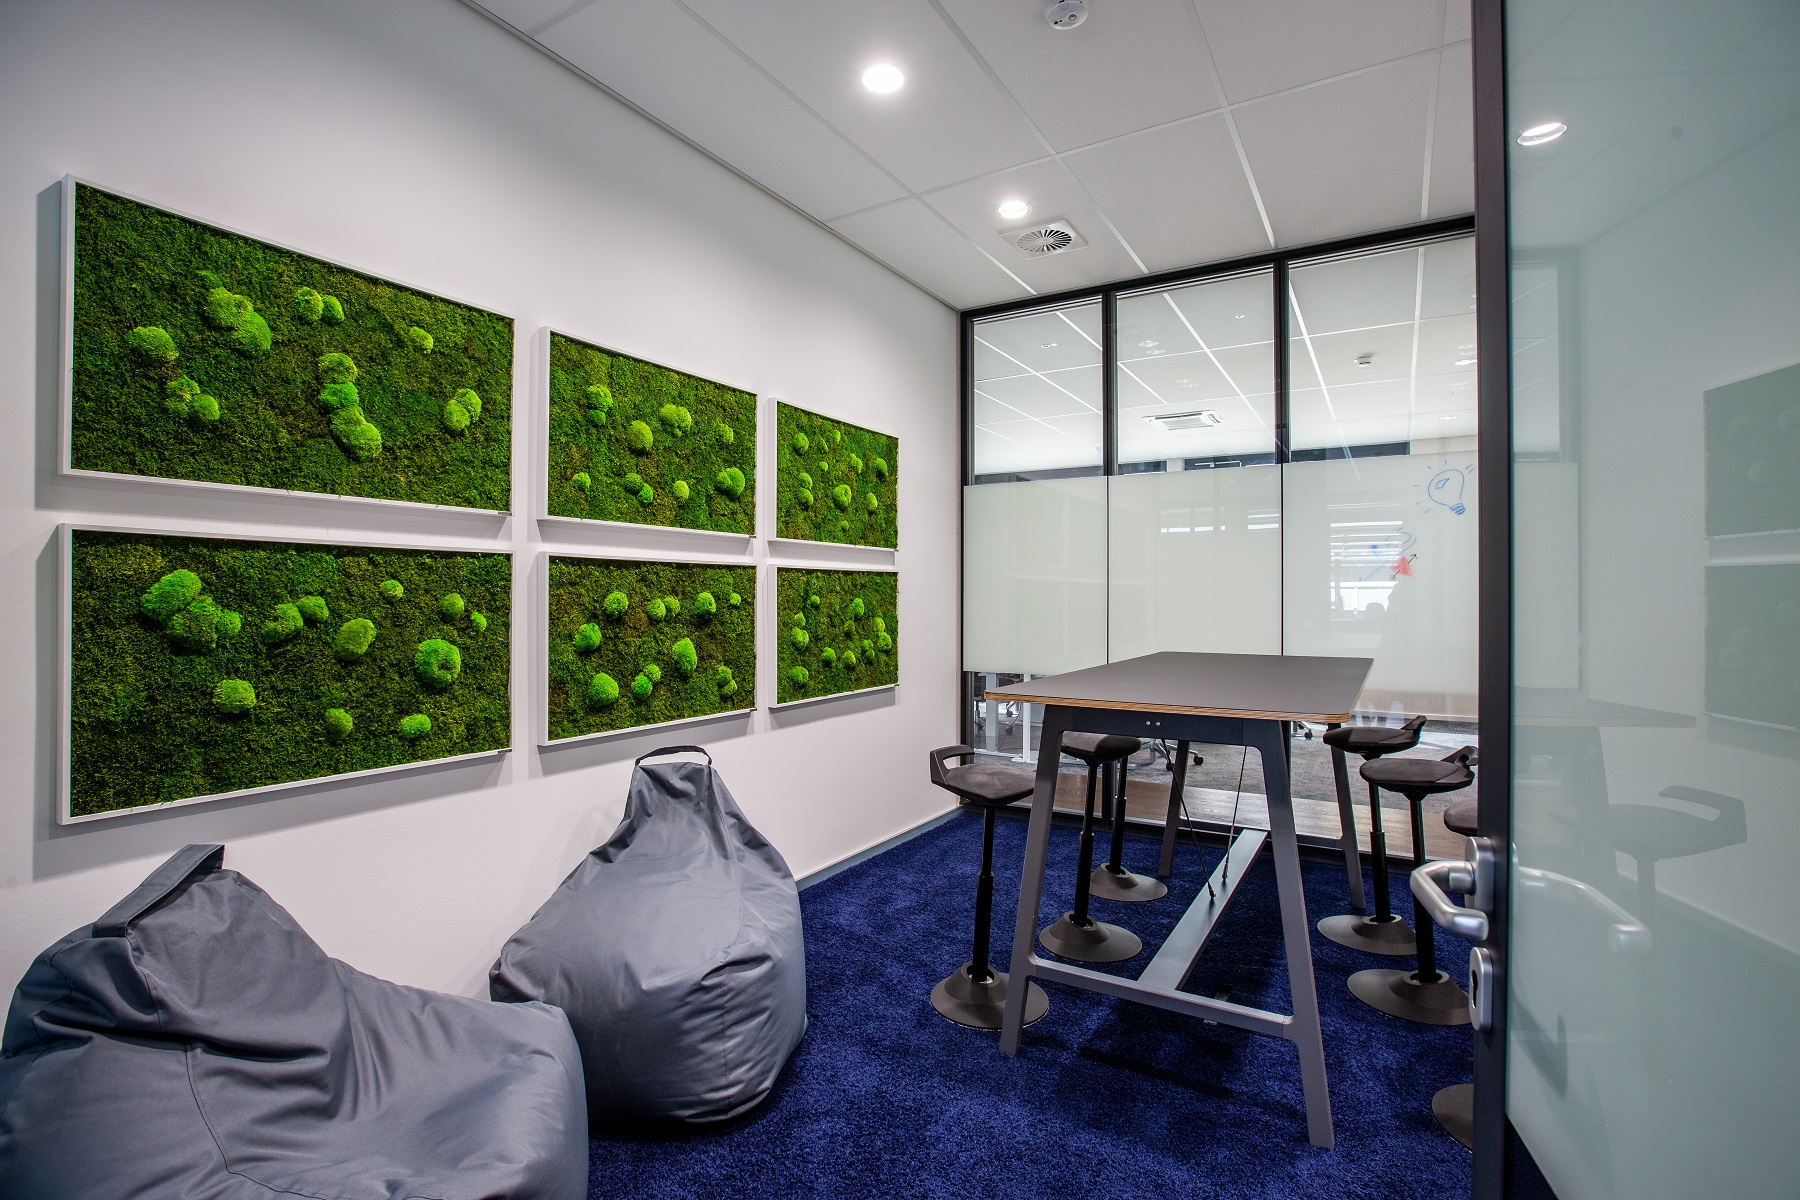 Roche meeting room can be booked with Signify Interact Office space management app